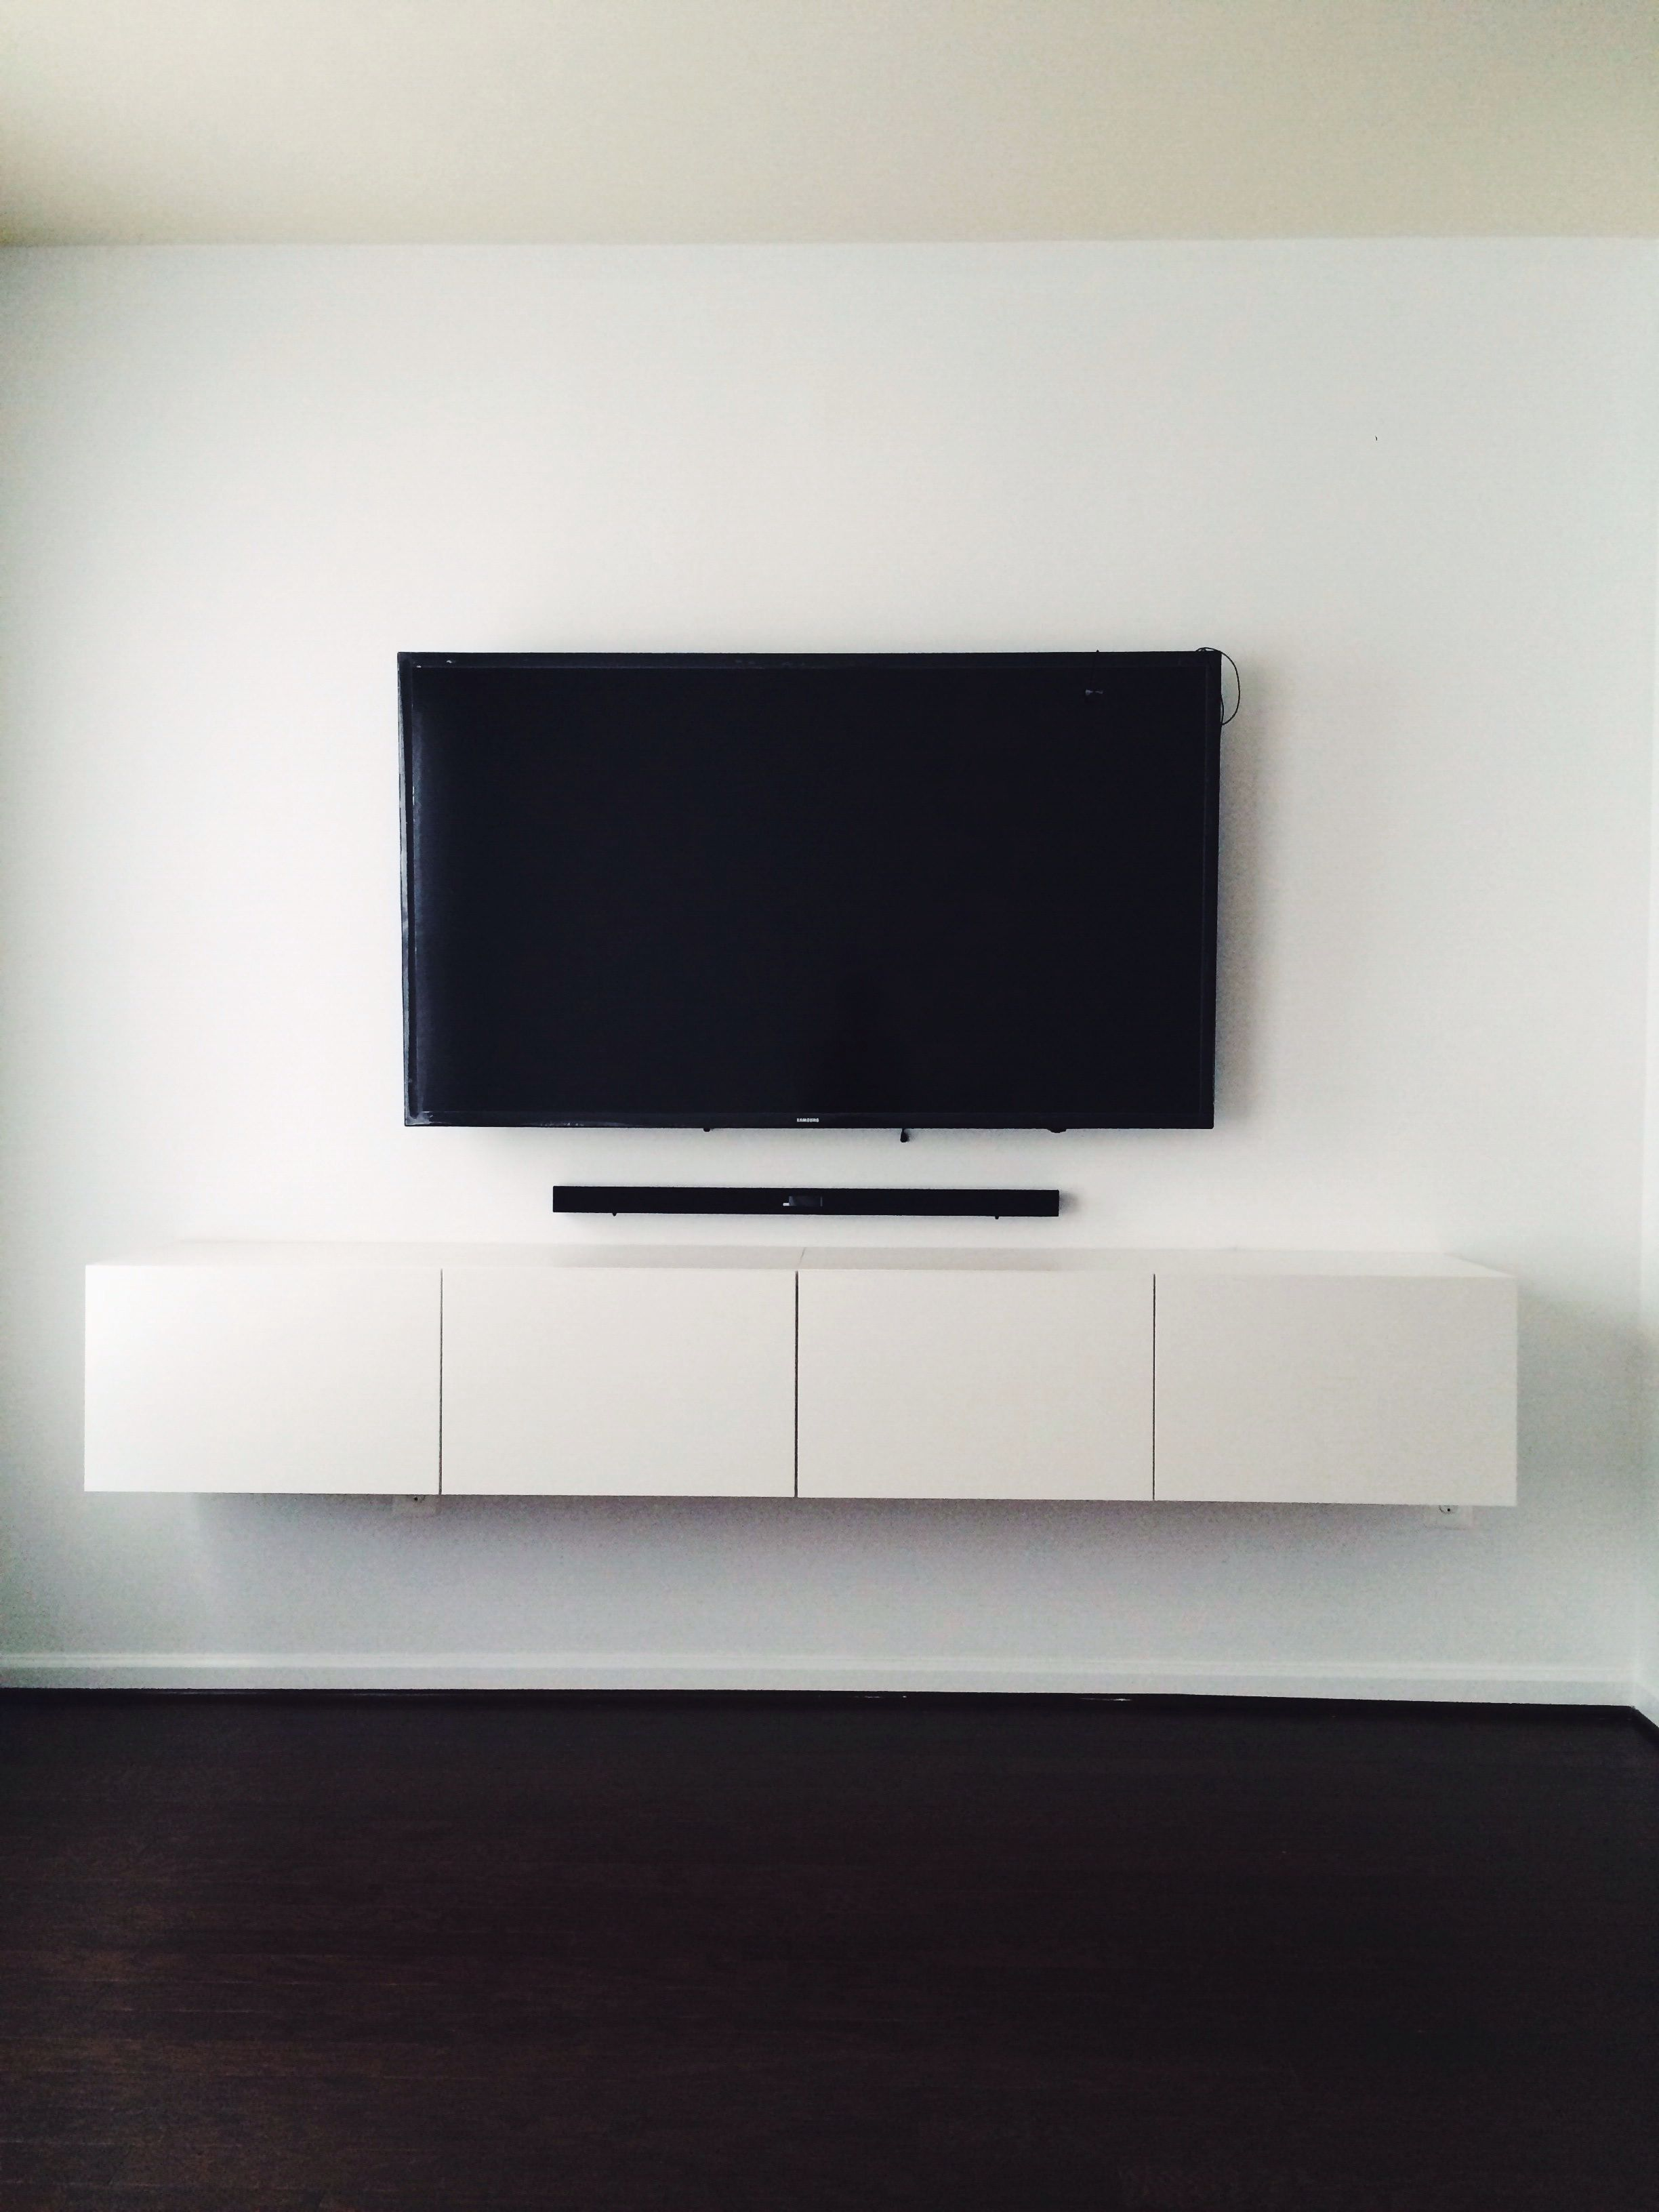 Ikea Best Media Console Mounted Tv With Hidden Wires Now That 39 S Clean Modern Living